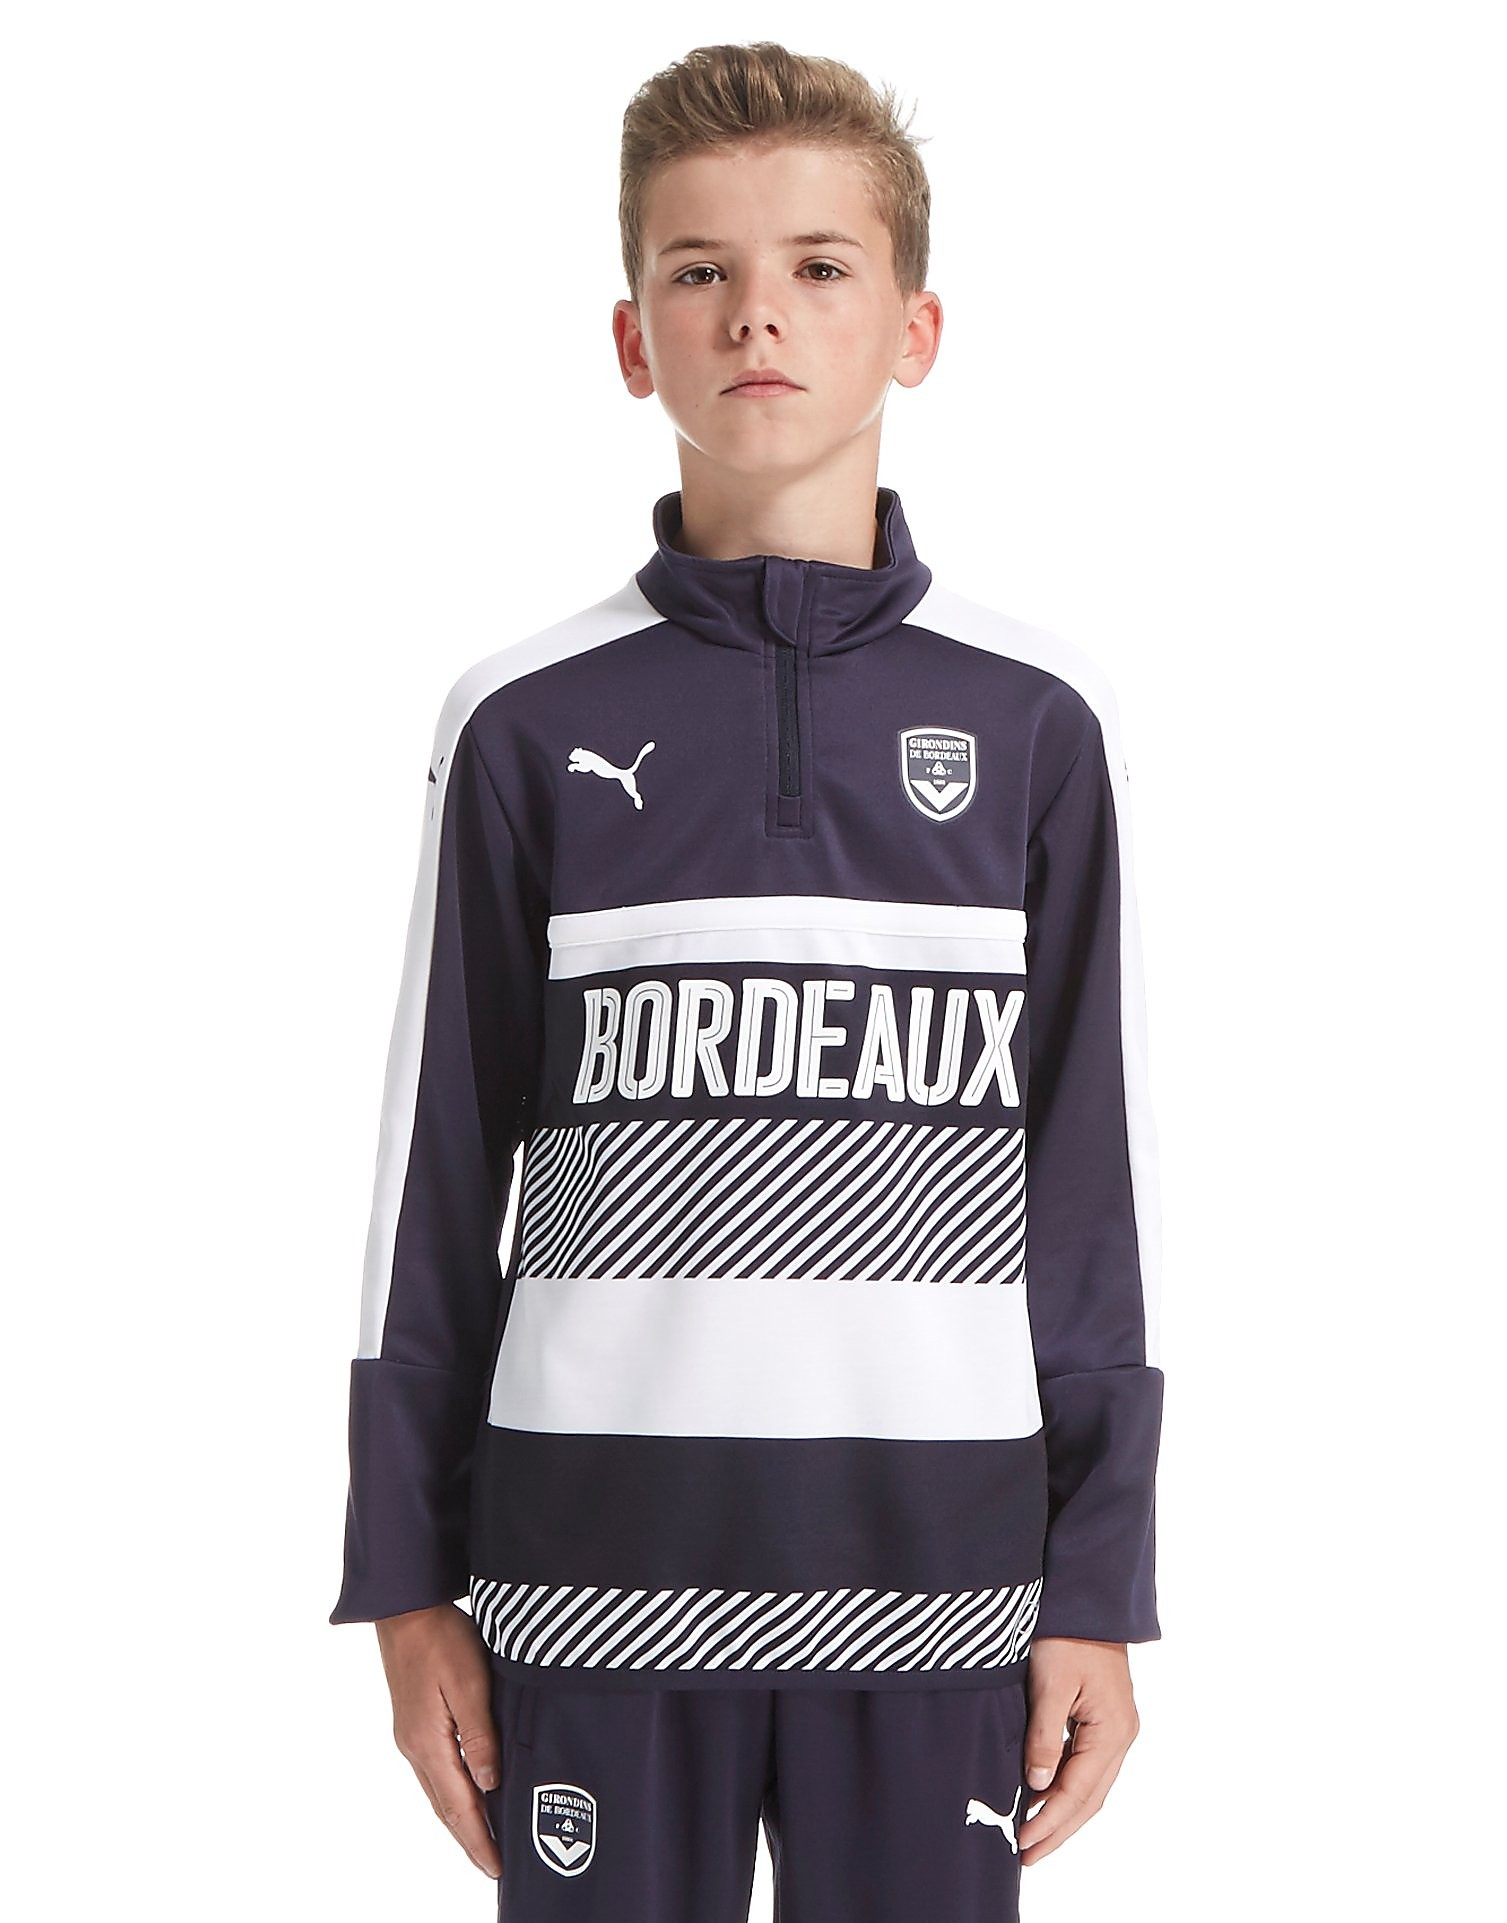 PUMA Bordeaux 2016/17 1/4 Zip Training Top Junior